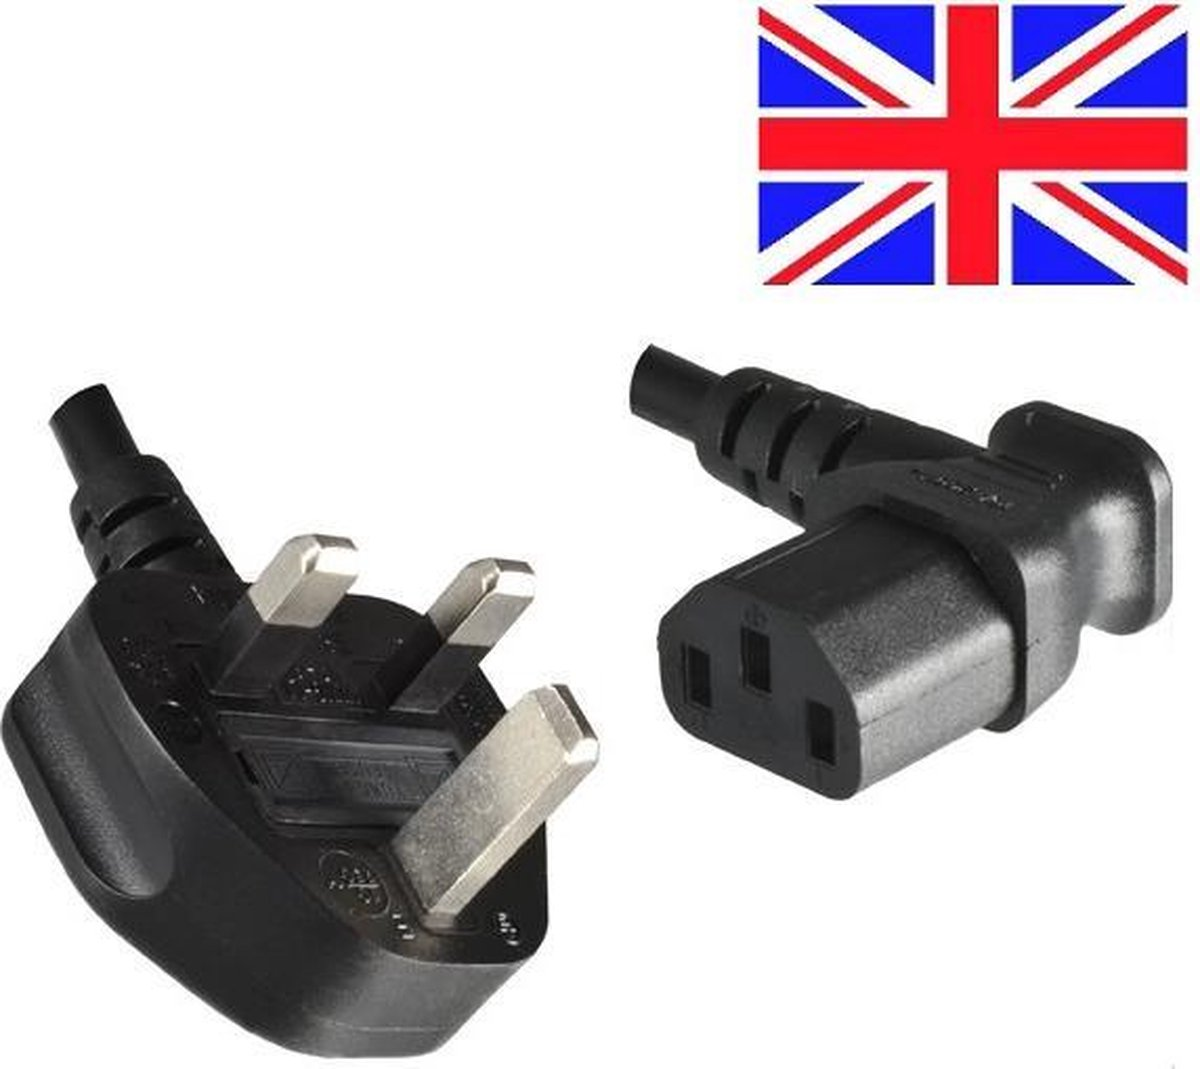 Good Connections Apparaatsnoer met haakse C13 plug en haakse Britse (type G) stekker - 3x 0,75mm / zwart - 2 meter